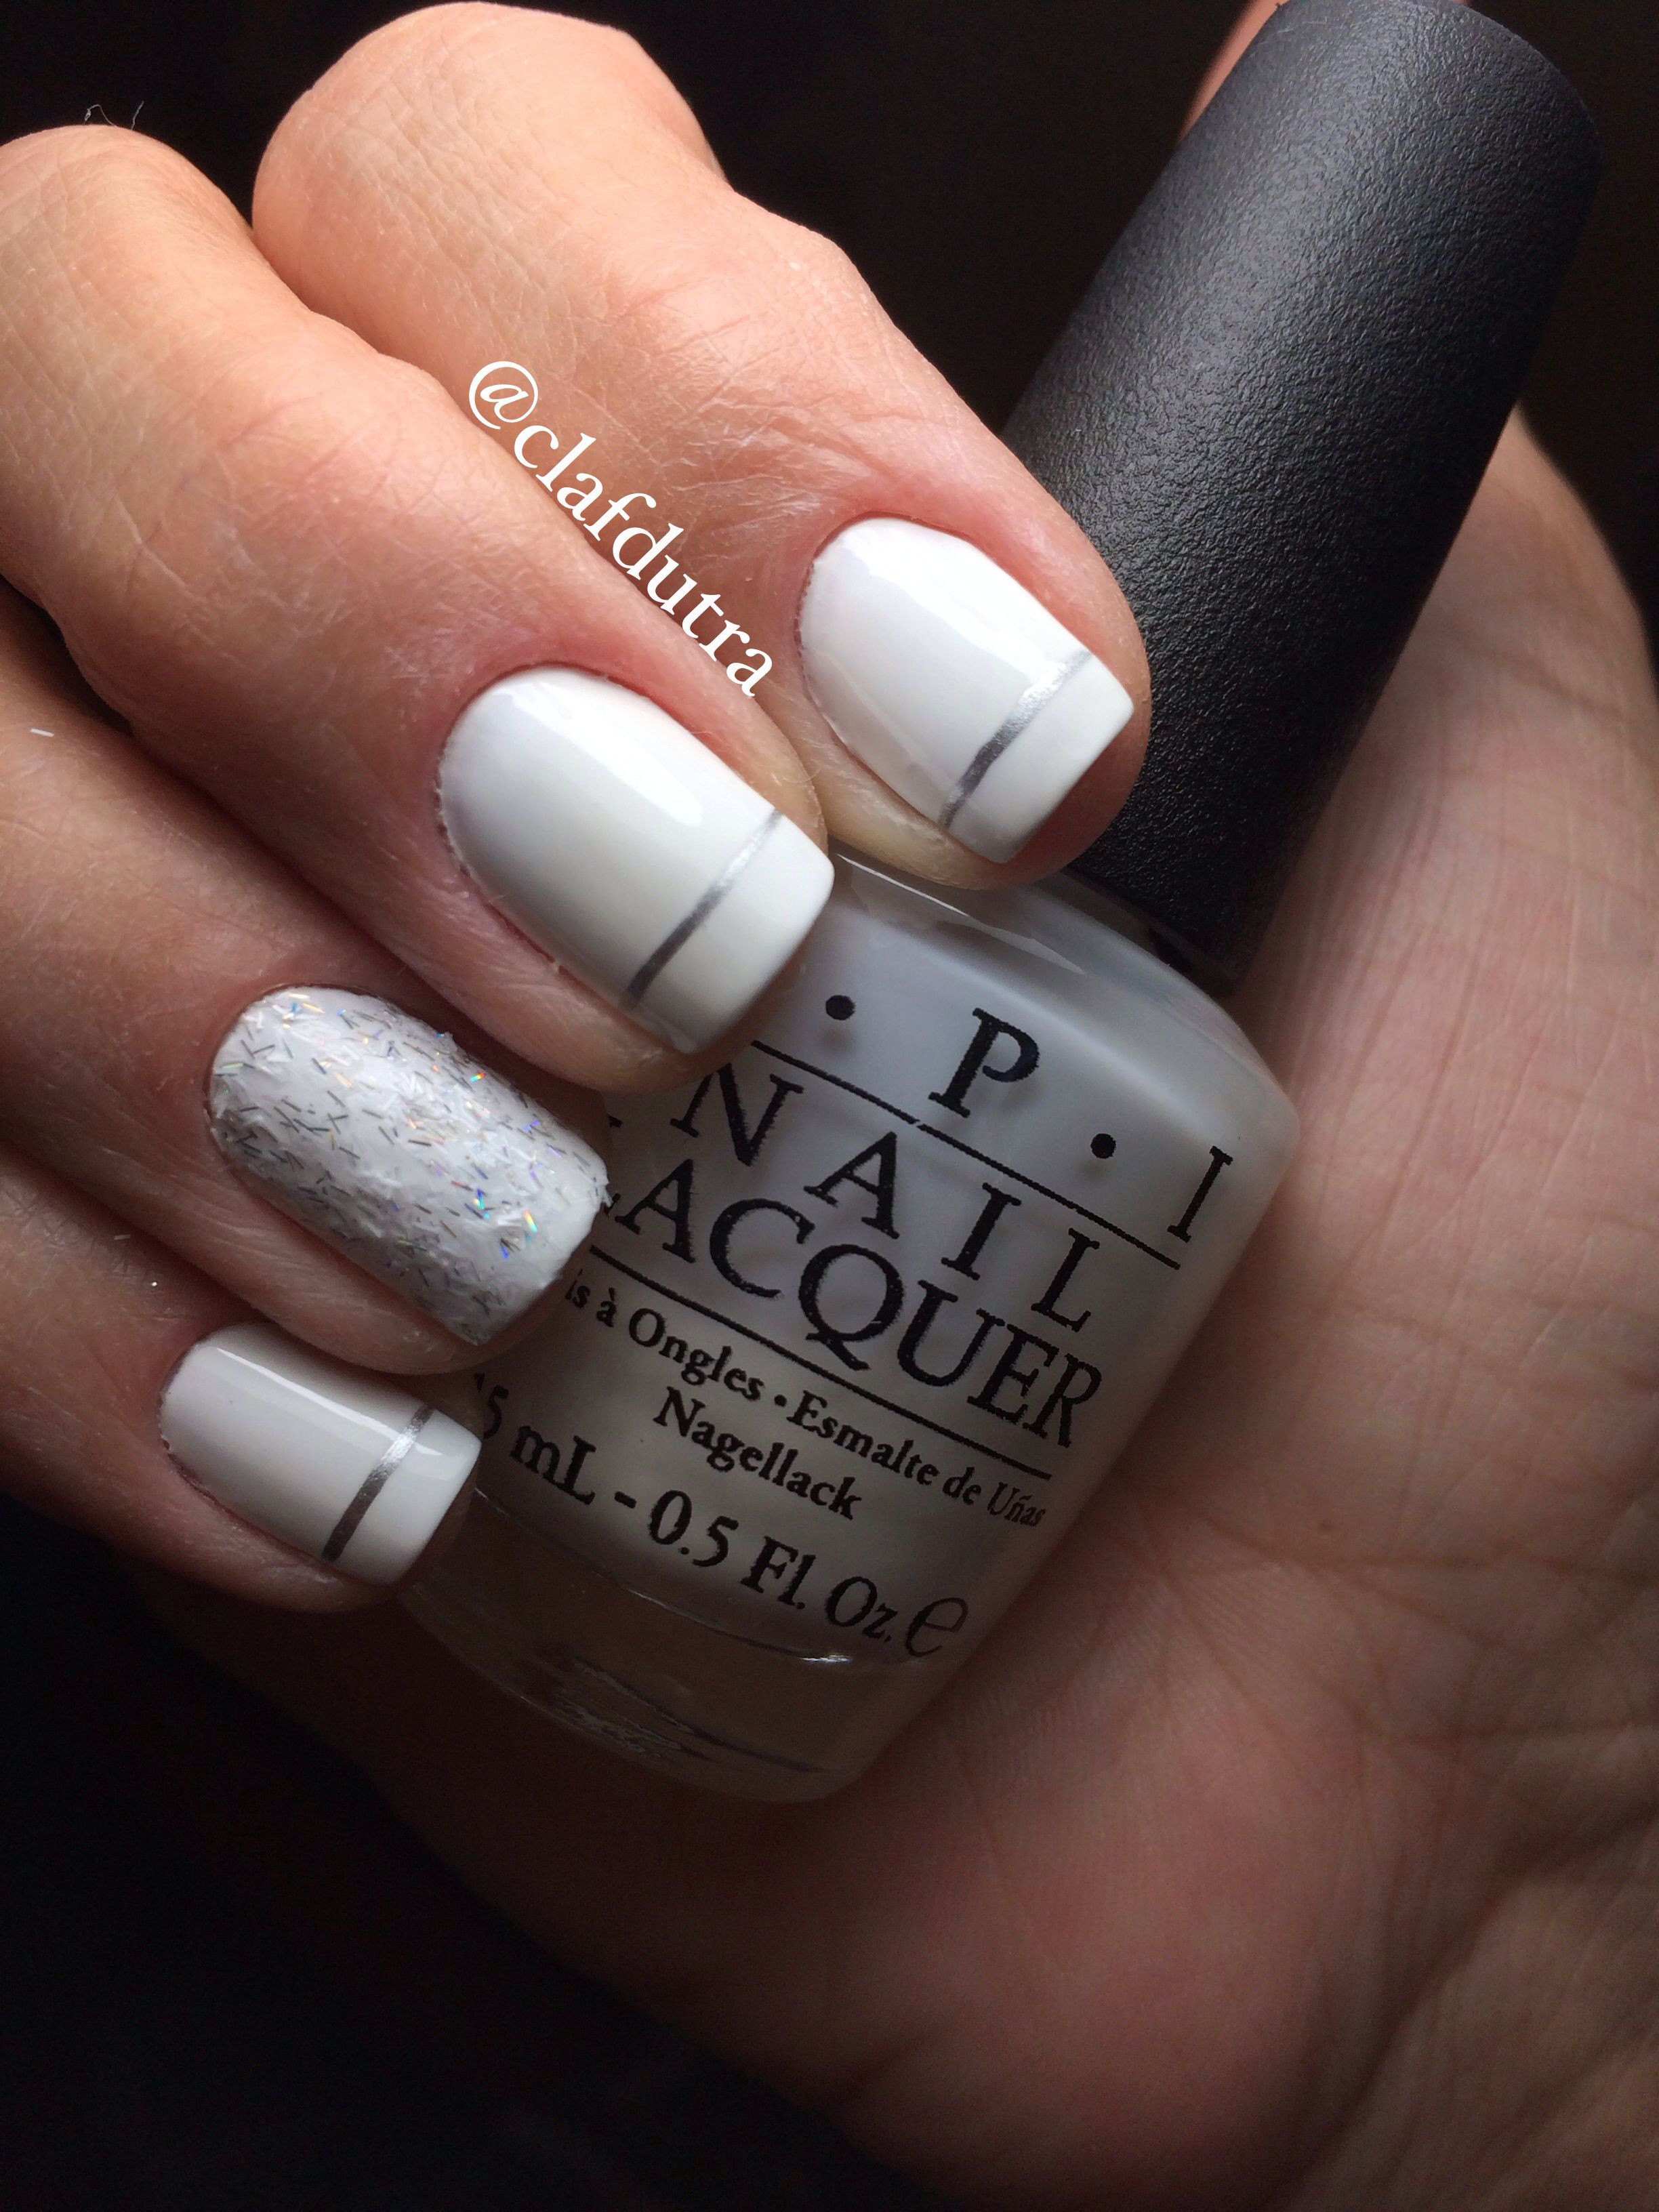 Alpine snow OPI and peak of chic Essie @Soraya Abreu | Claudia\'s ...